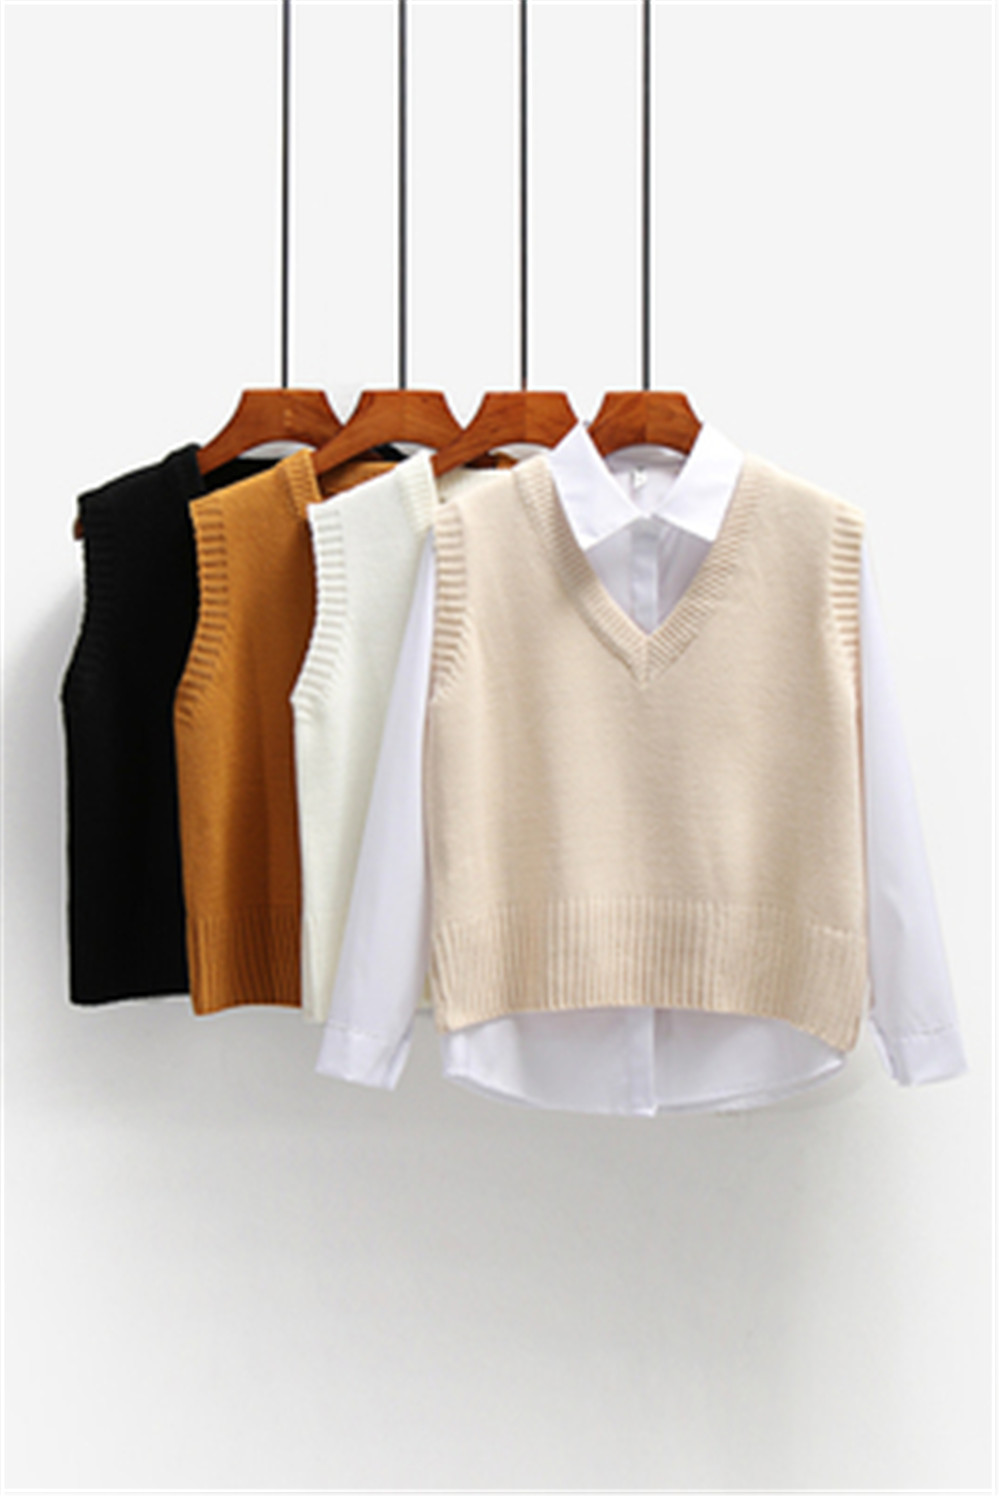 Women Sweater Vest Spring 2021 Autumn Women Short Loose Knitted Sweater Sleeveless Ladies V-Neck Pullover Tops Female Outerwear 2